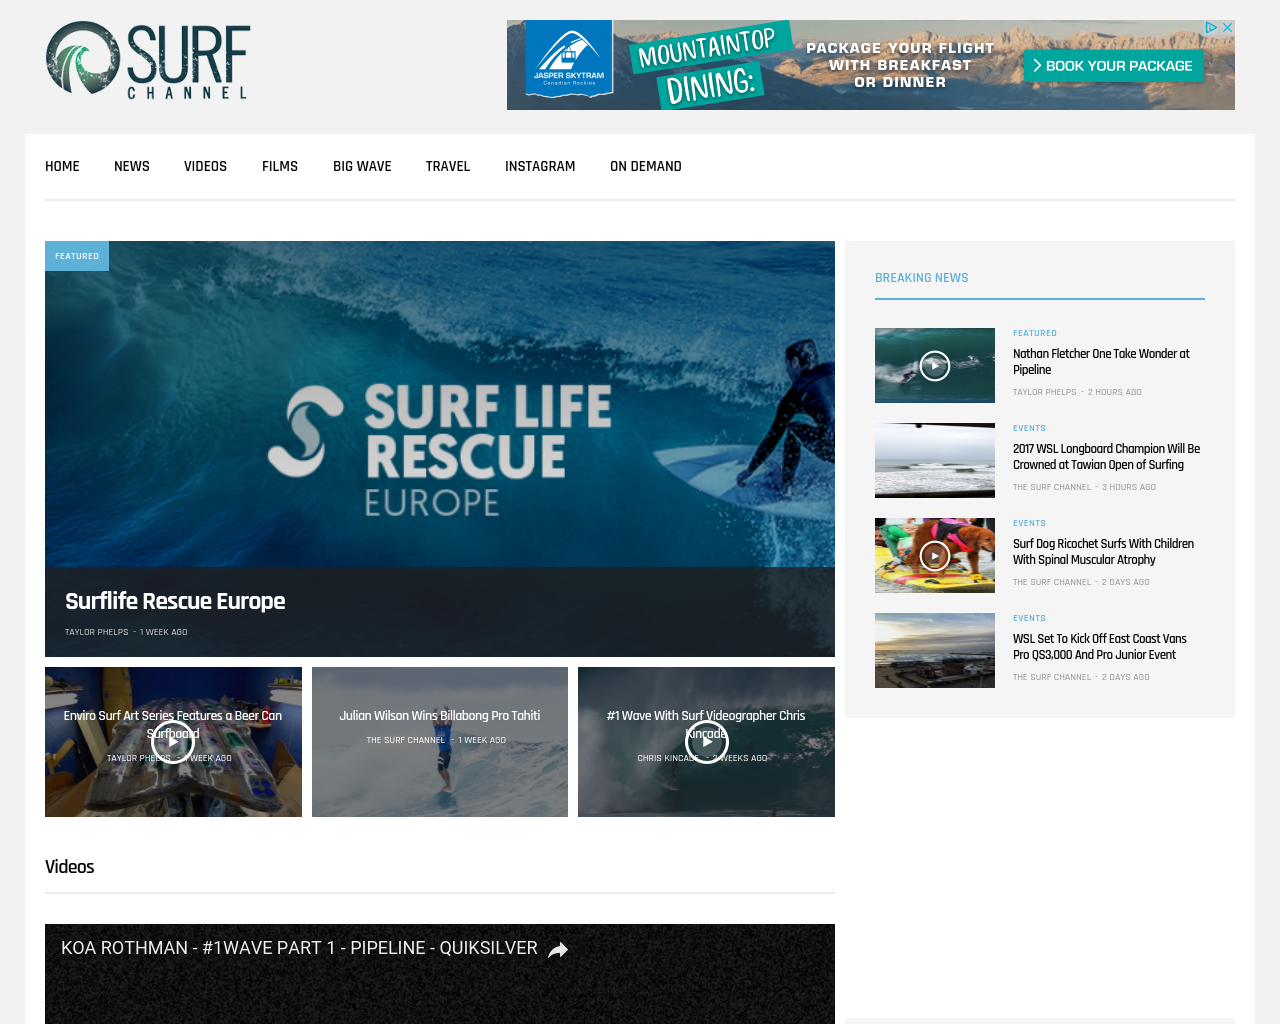 The-Surf-Channel-Advertising-Reviews-Pricing